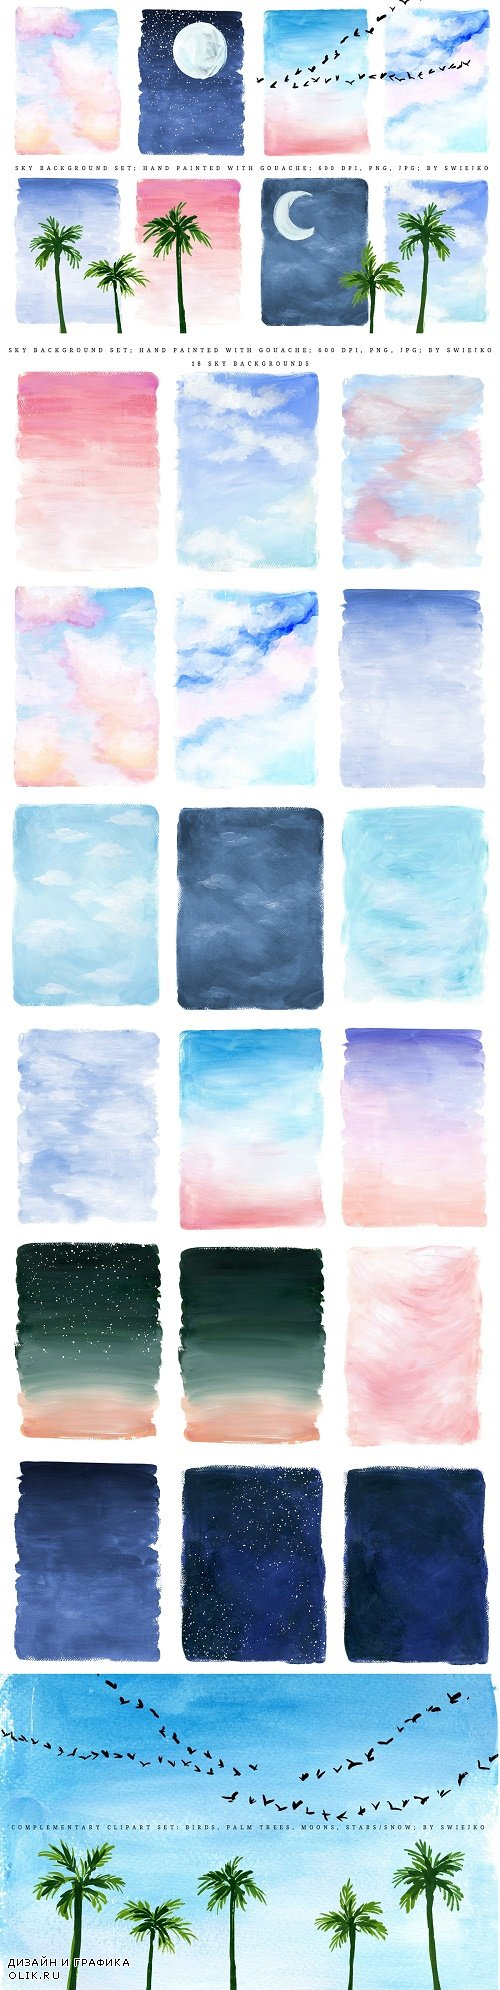 Sky background, illustration set - 2303621